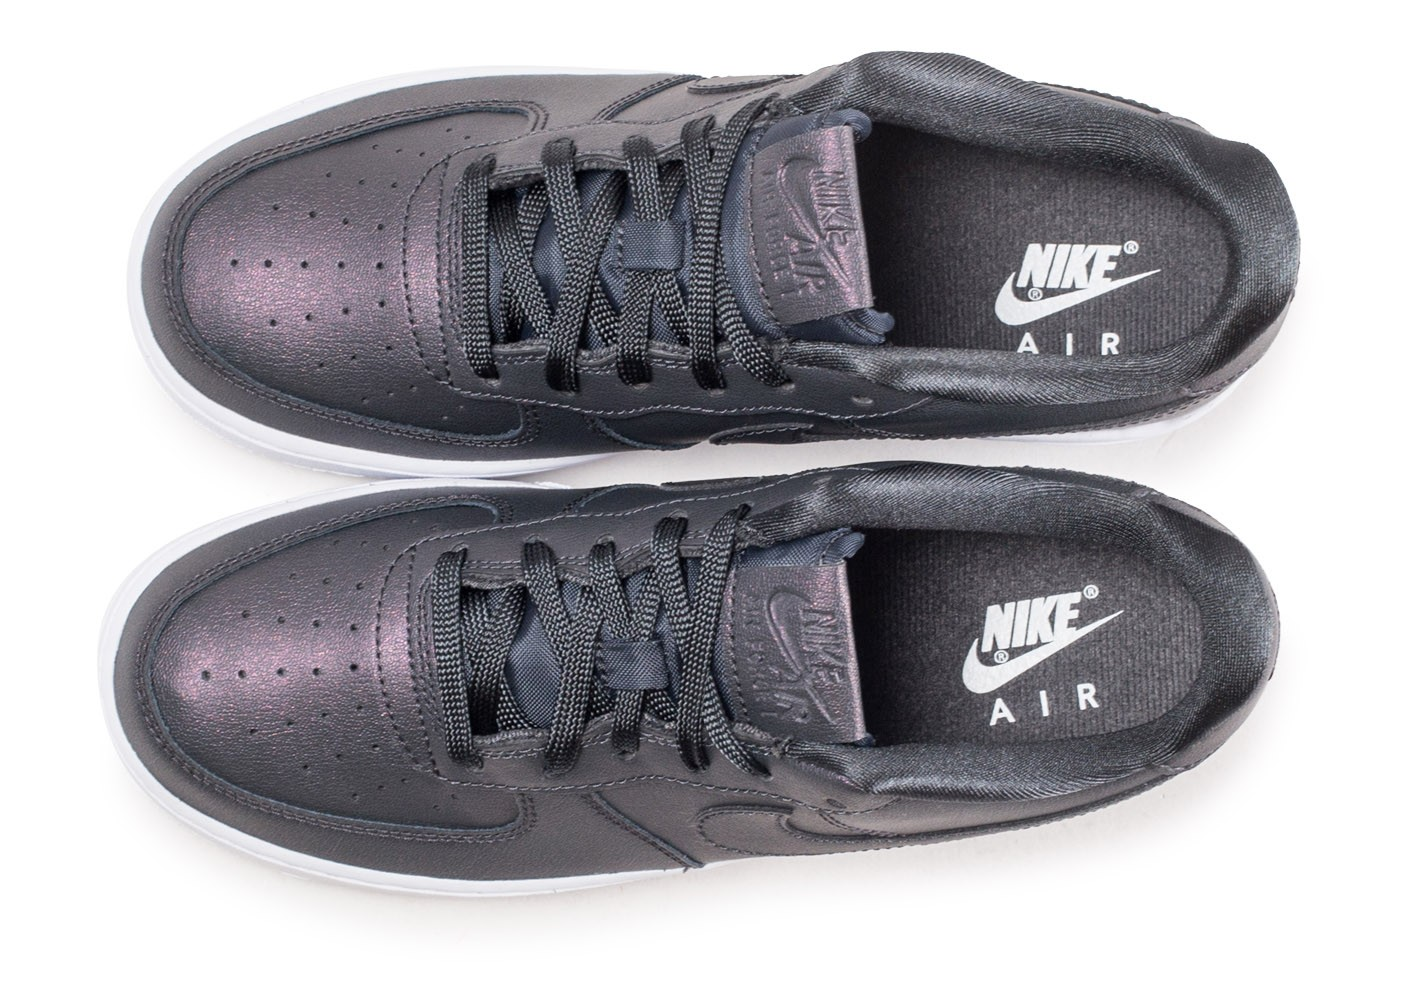 half off 1f4ba 44343 ... Chaussures Nike Air Force 1 SS anthracite junior vue arrière ...